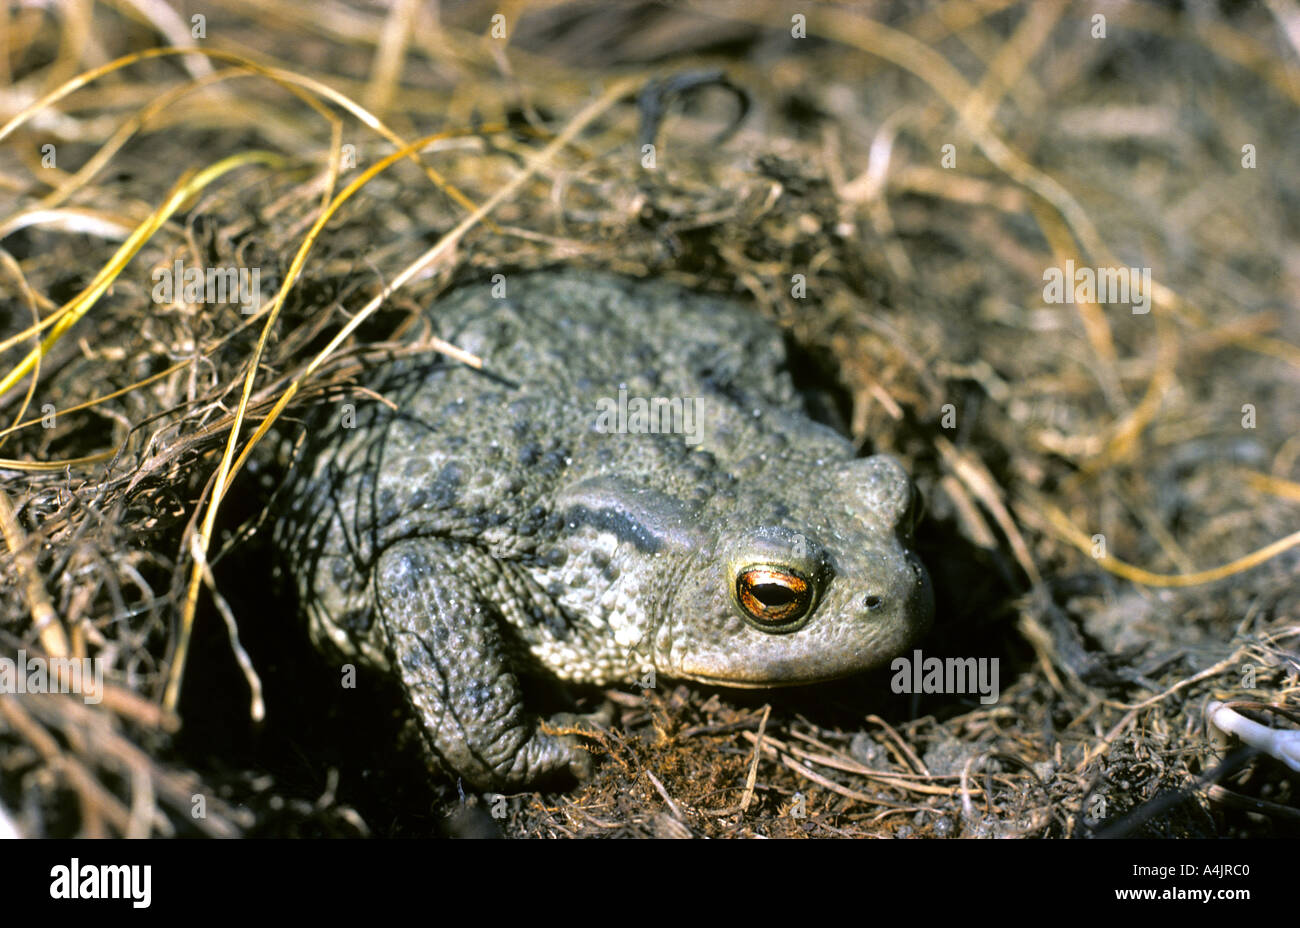 Common Toad (Bufo bufo) emerging from winter hibernation. - Stock Image